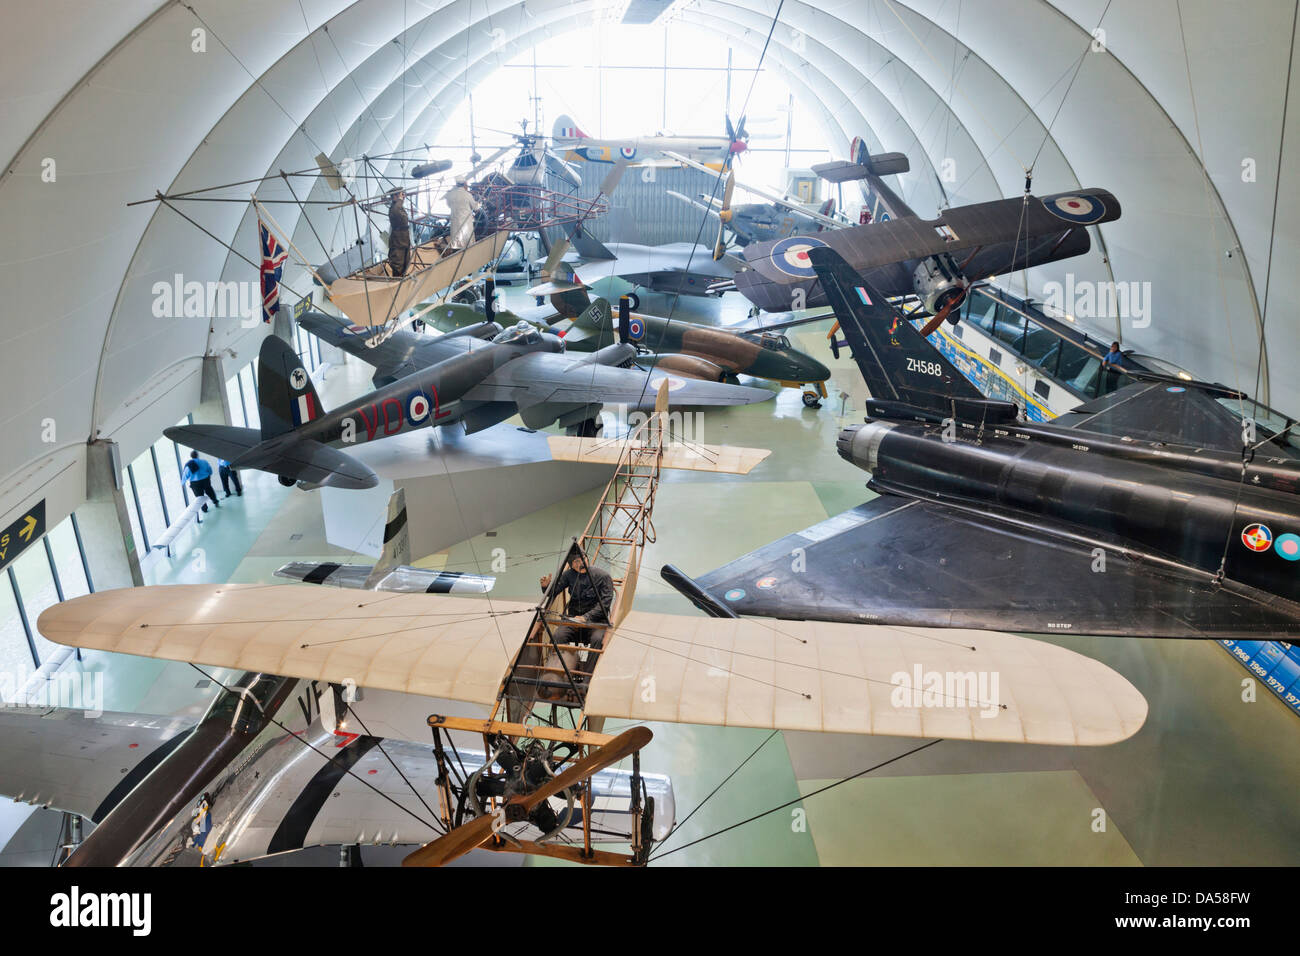 England, London, Hendon, The Royal Airforce Museum, Display of Vintage Aircraft - Stock Image